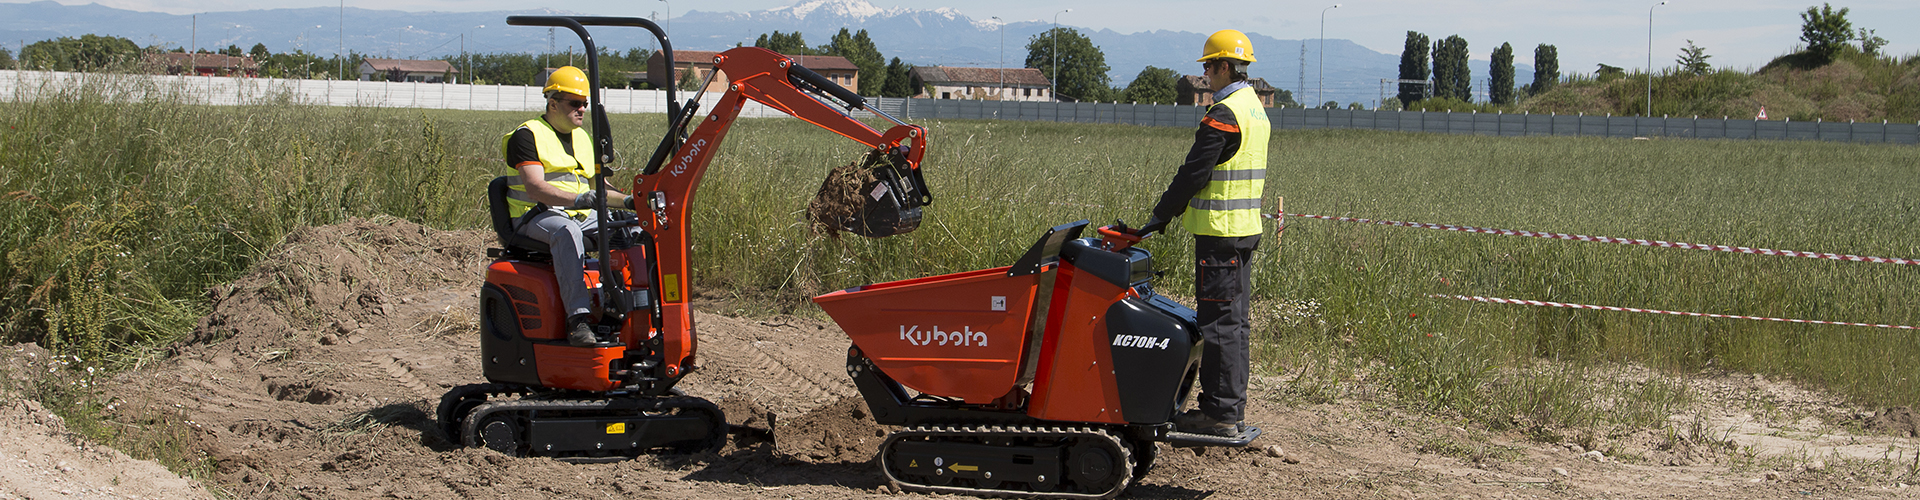 Kubota carrier dumpers series